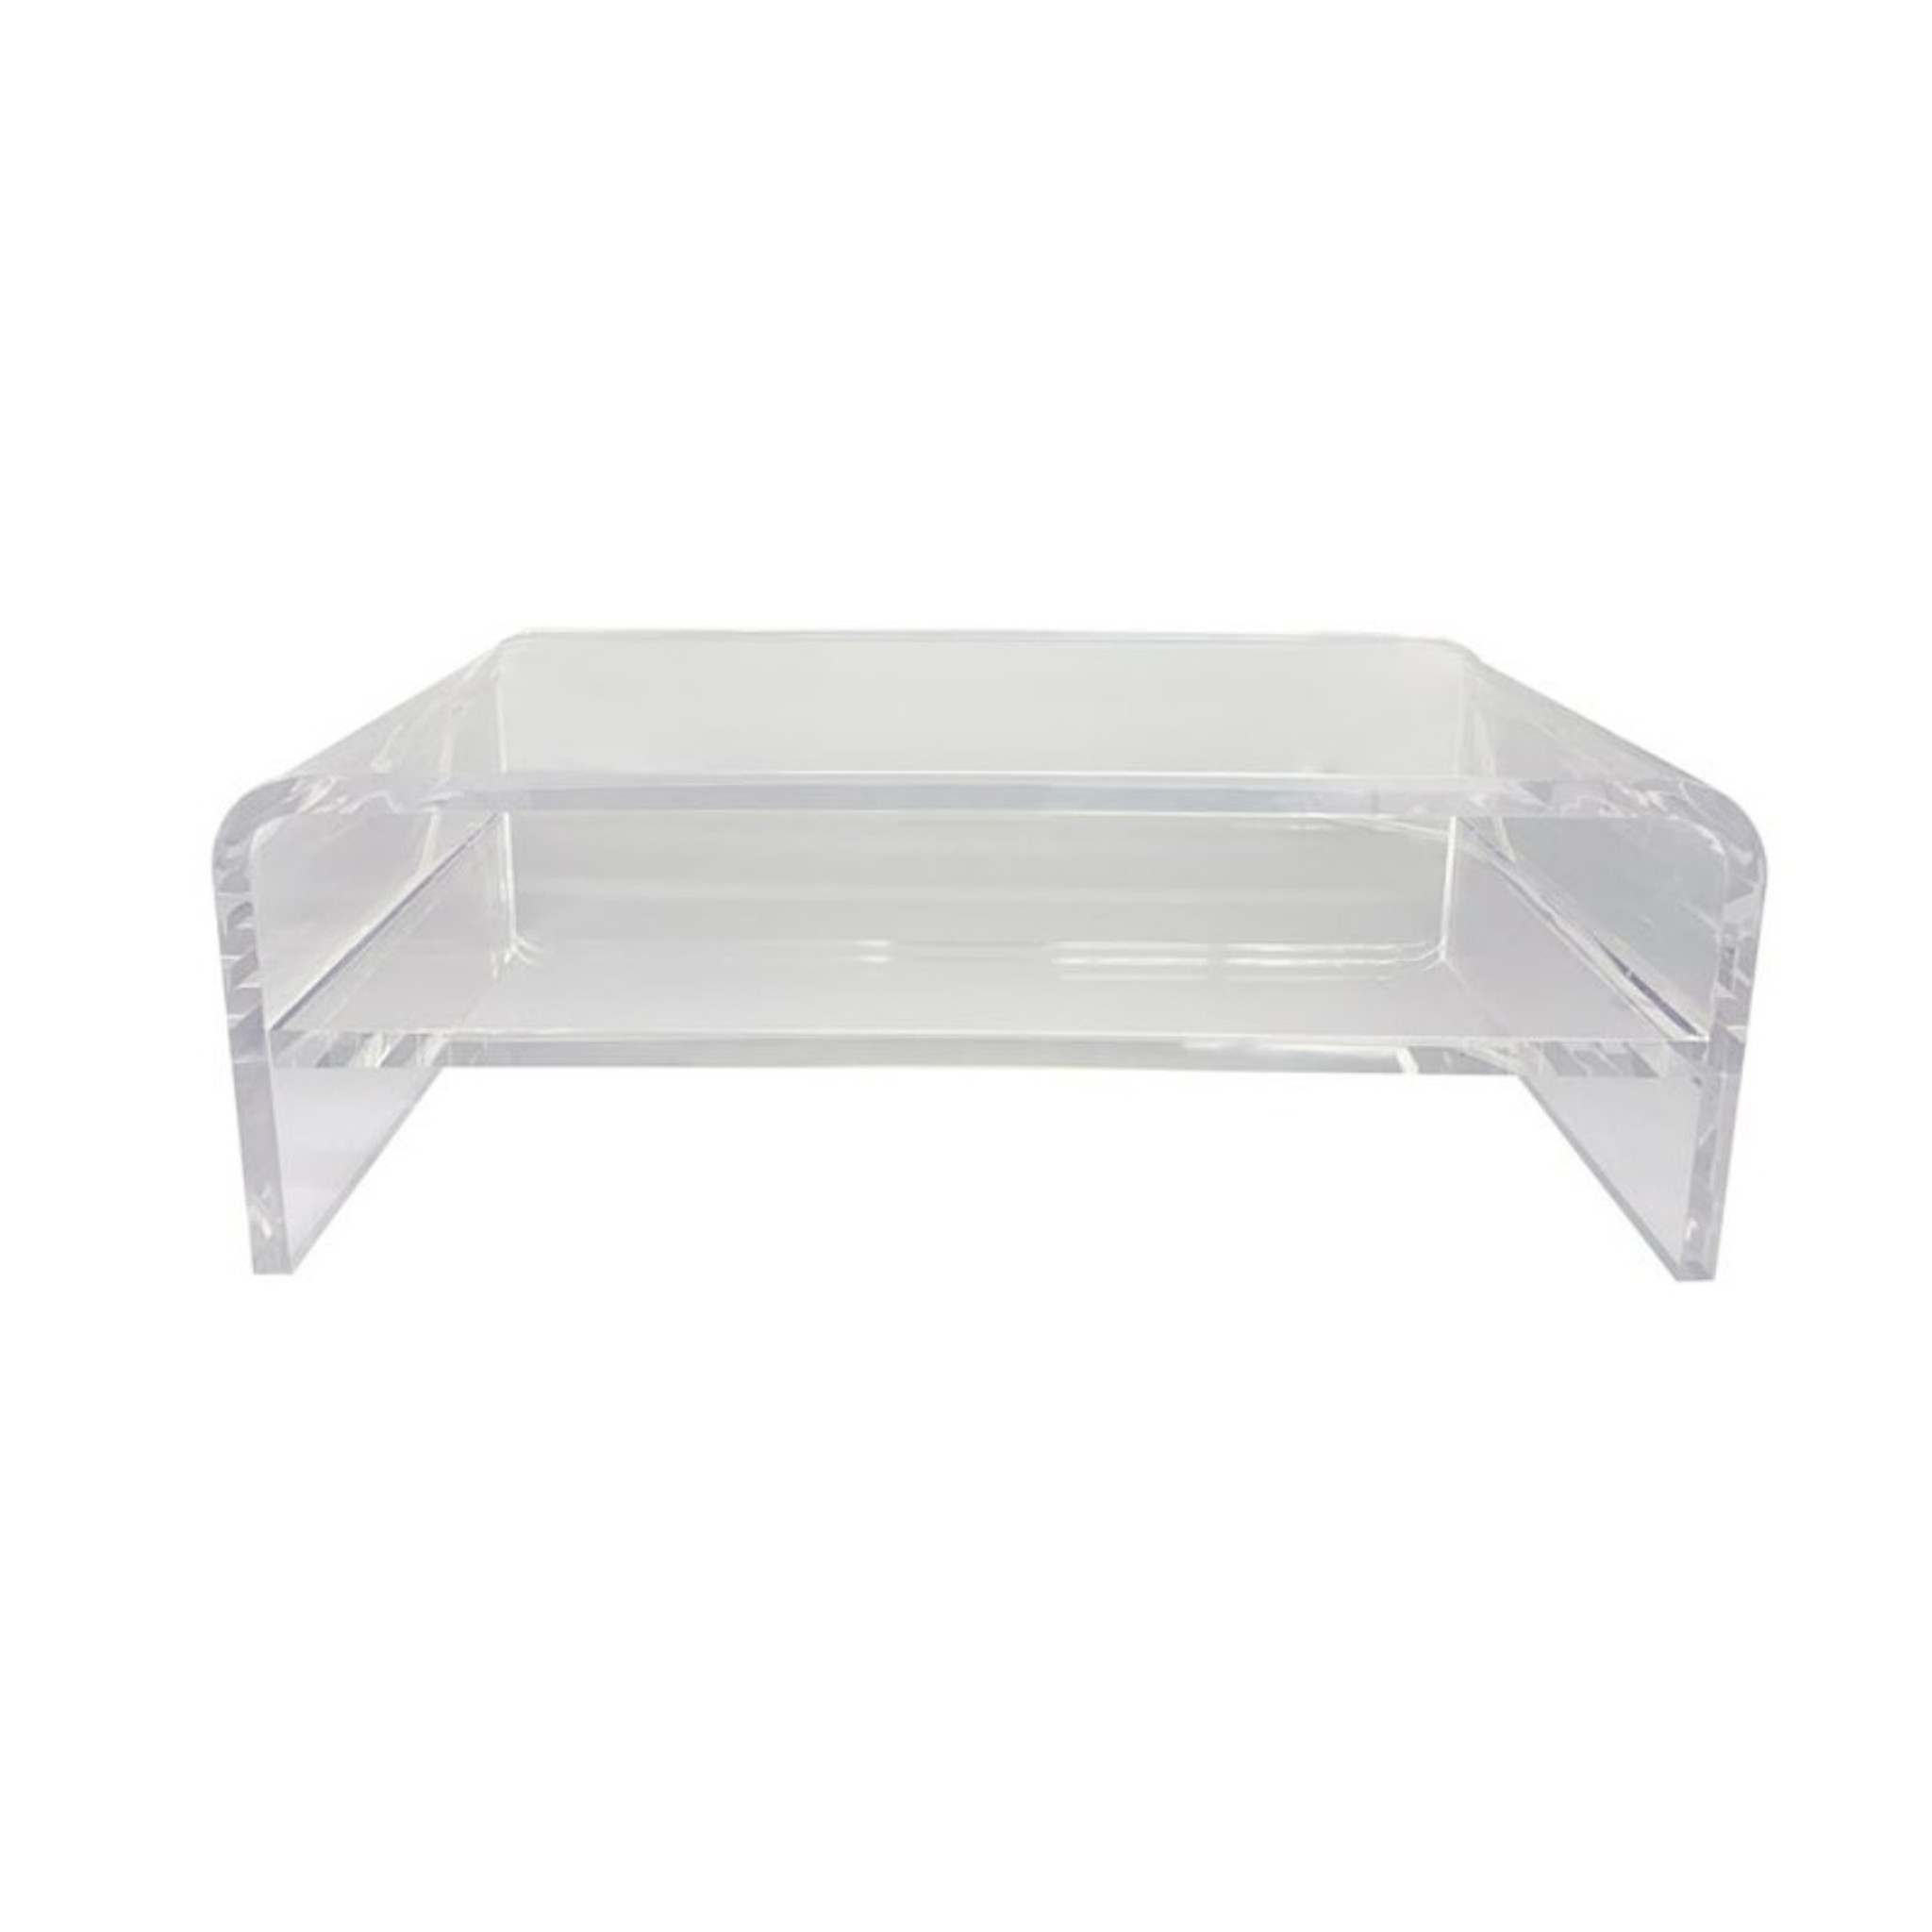 2 Tier Thick Lucite Computer Riser with Storage Shelf